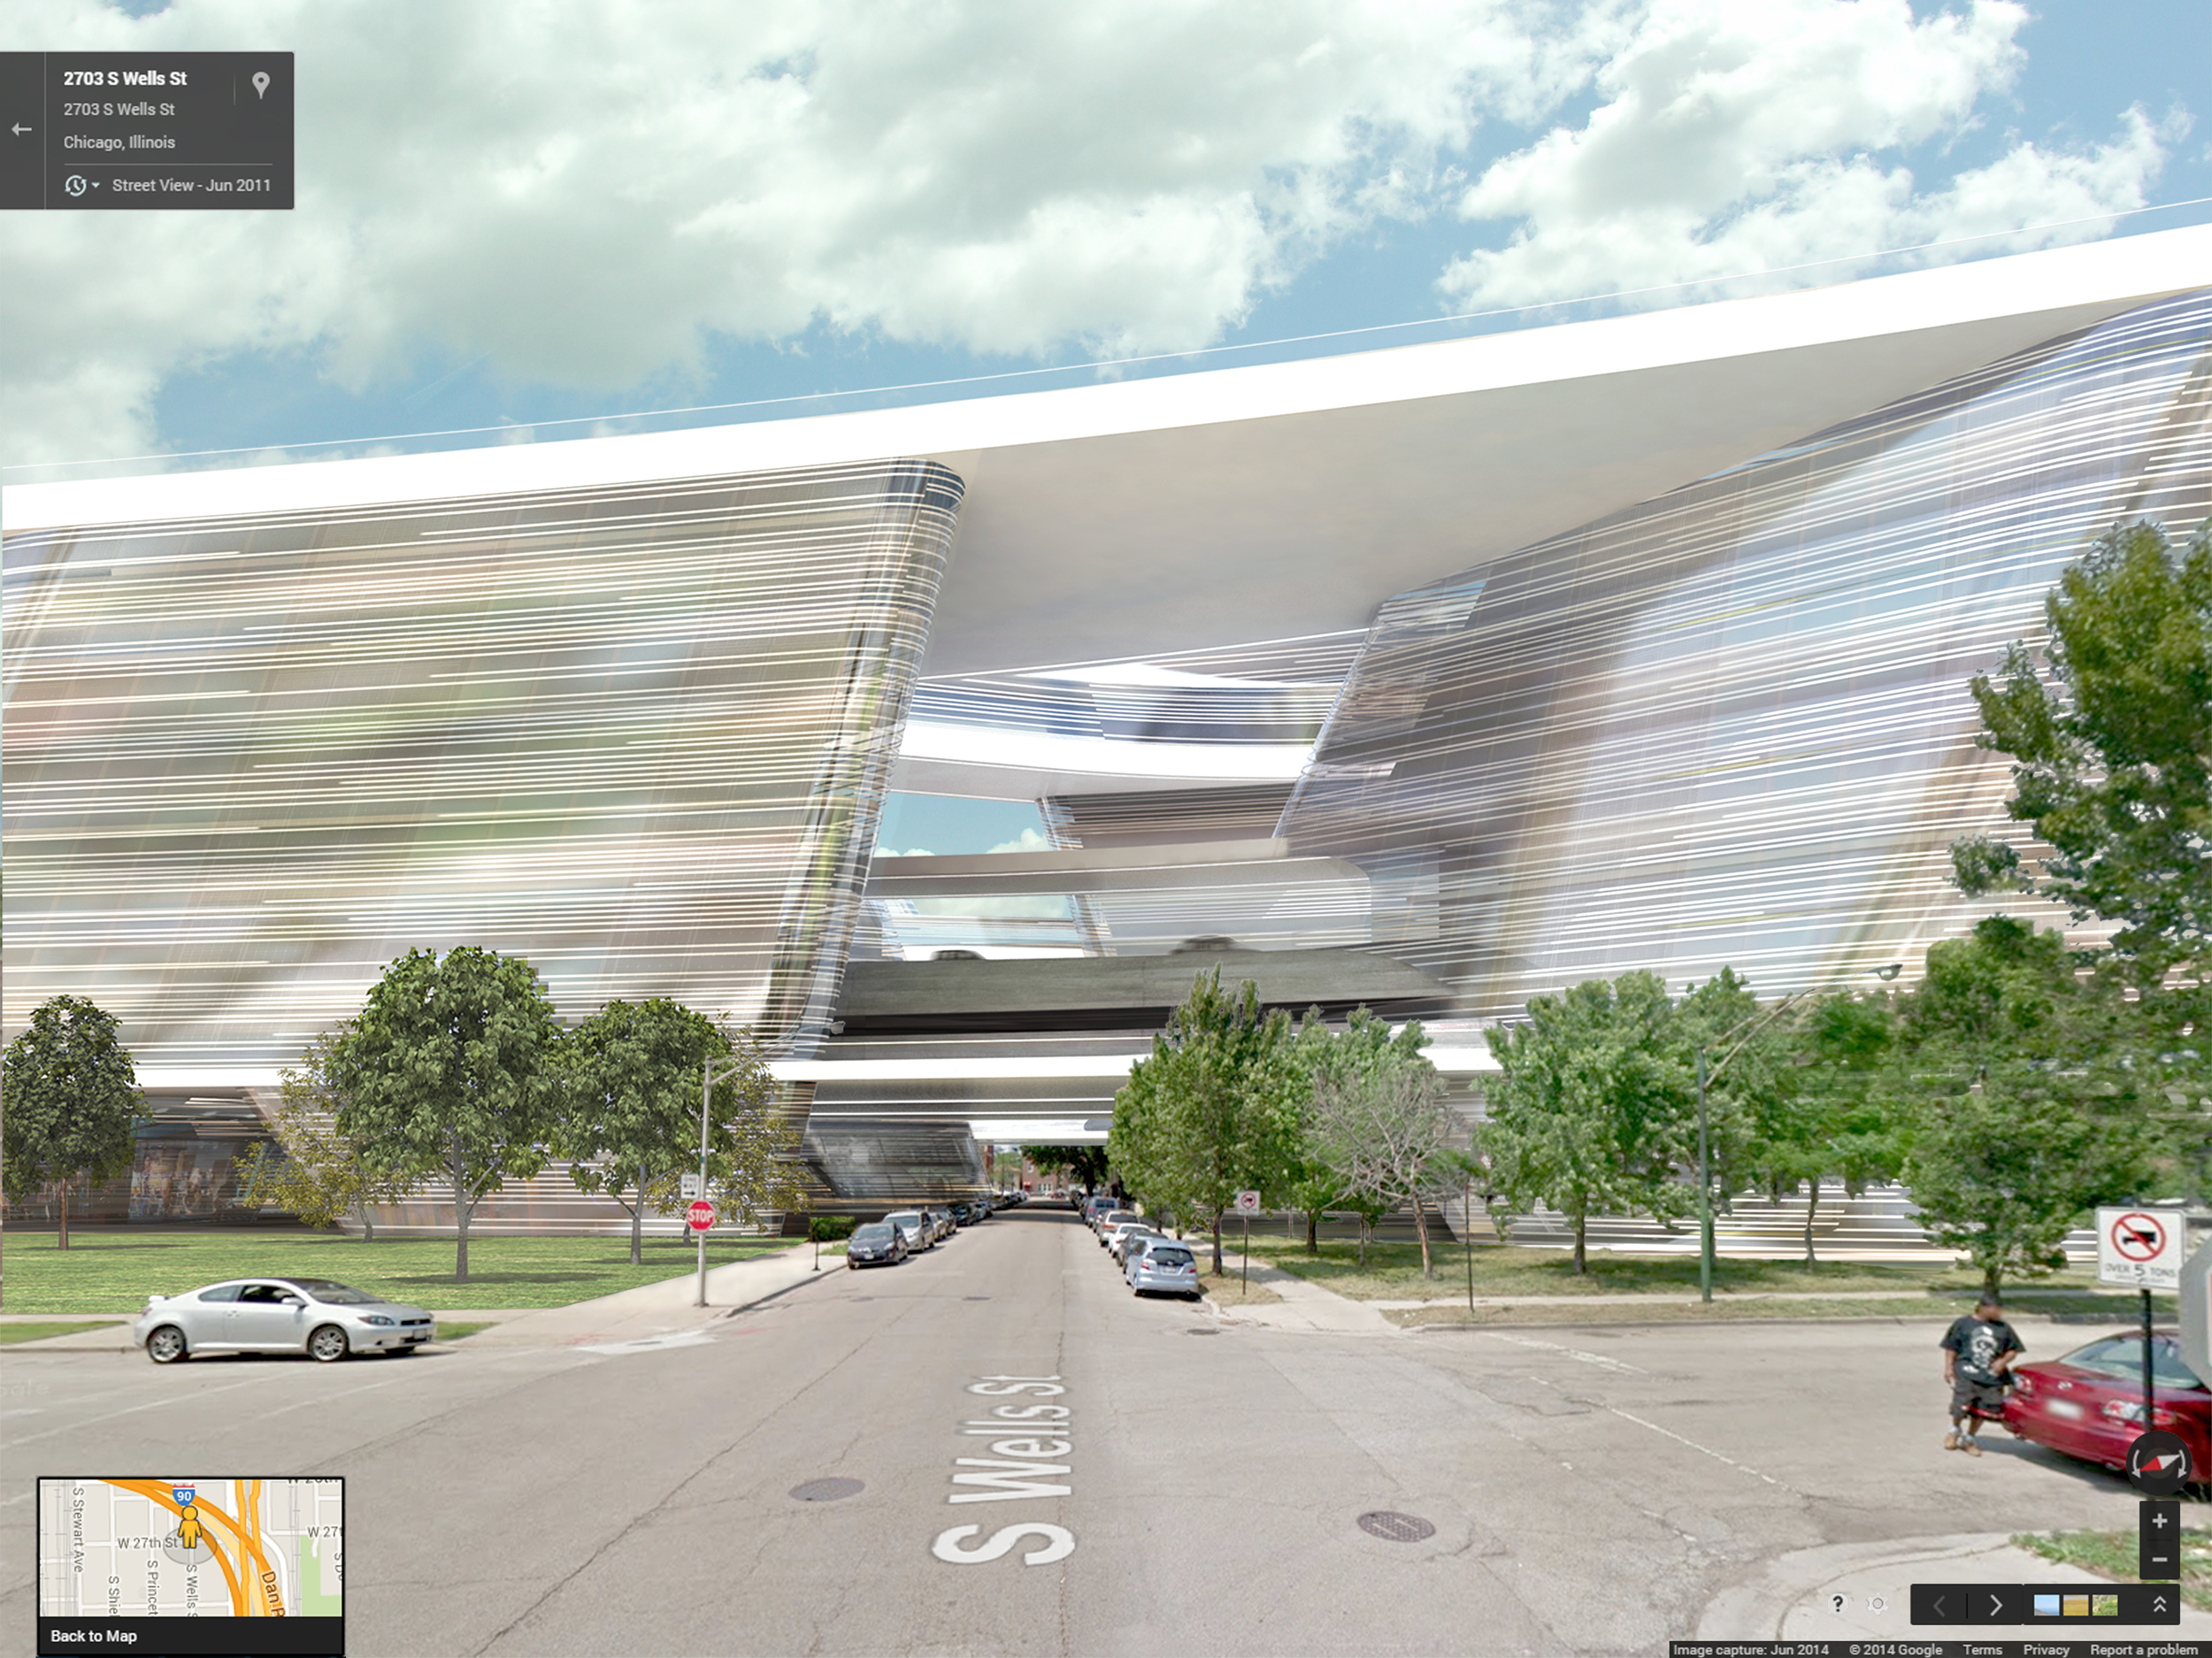 streetview_enlarged.jpg